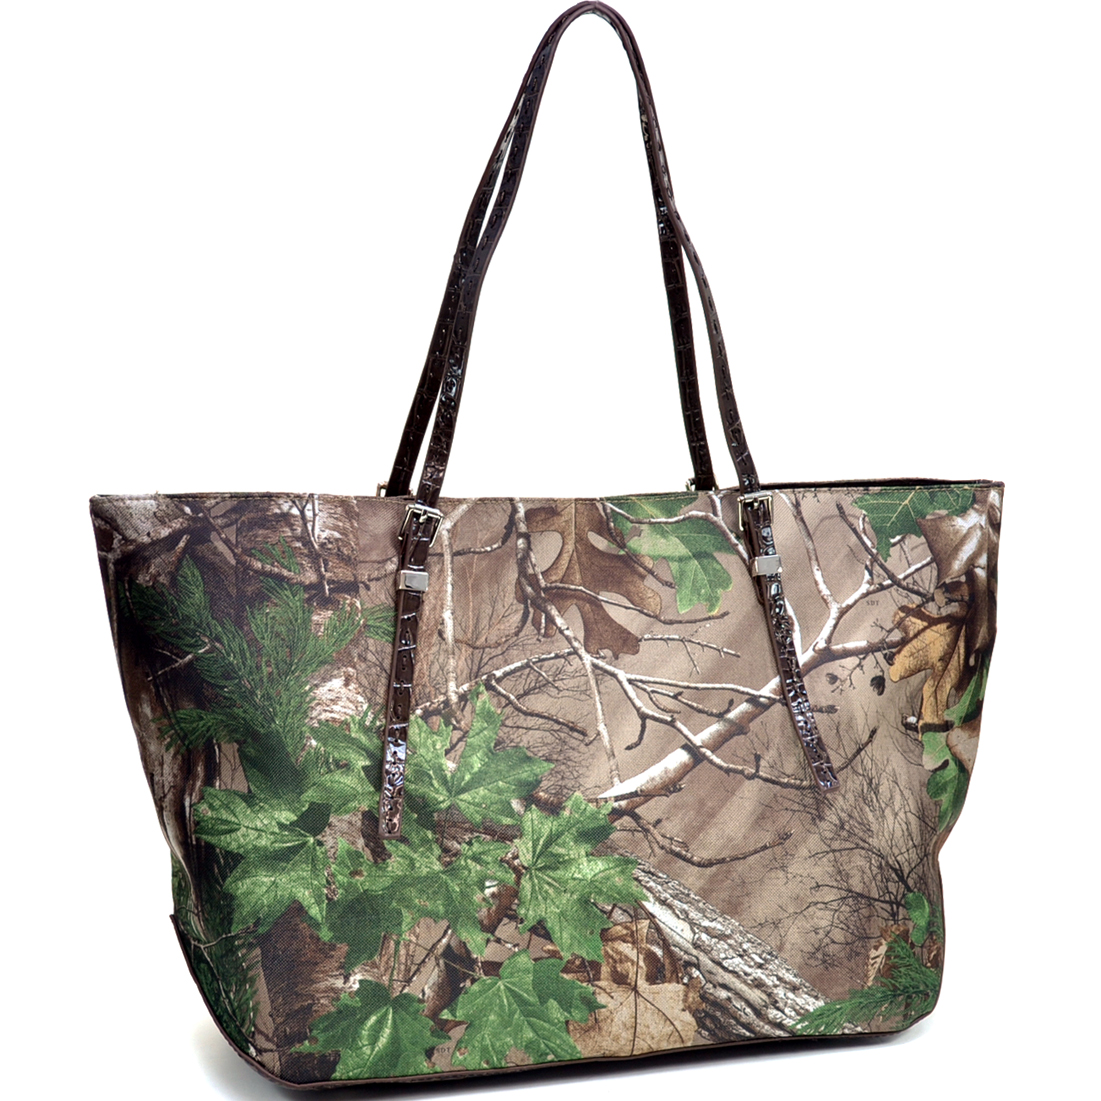 Dasein® Wide Carry-All XG Camouflage Tote Bag with Thin Shoulder Straps in Realtree Camo